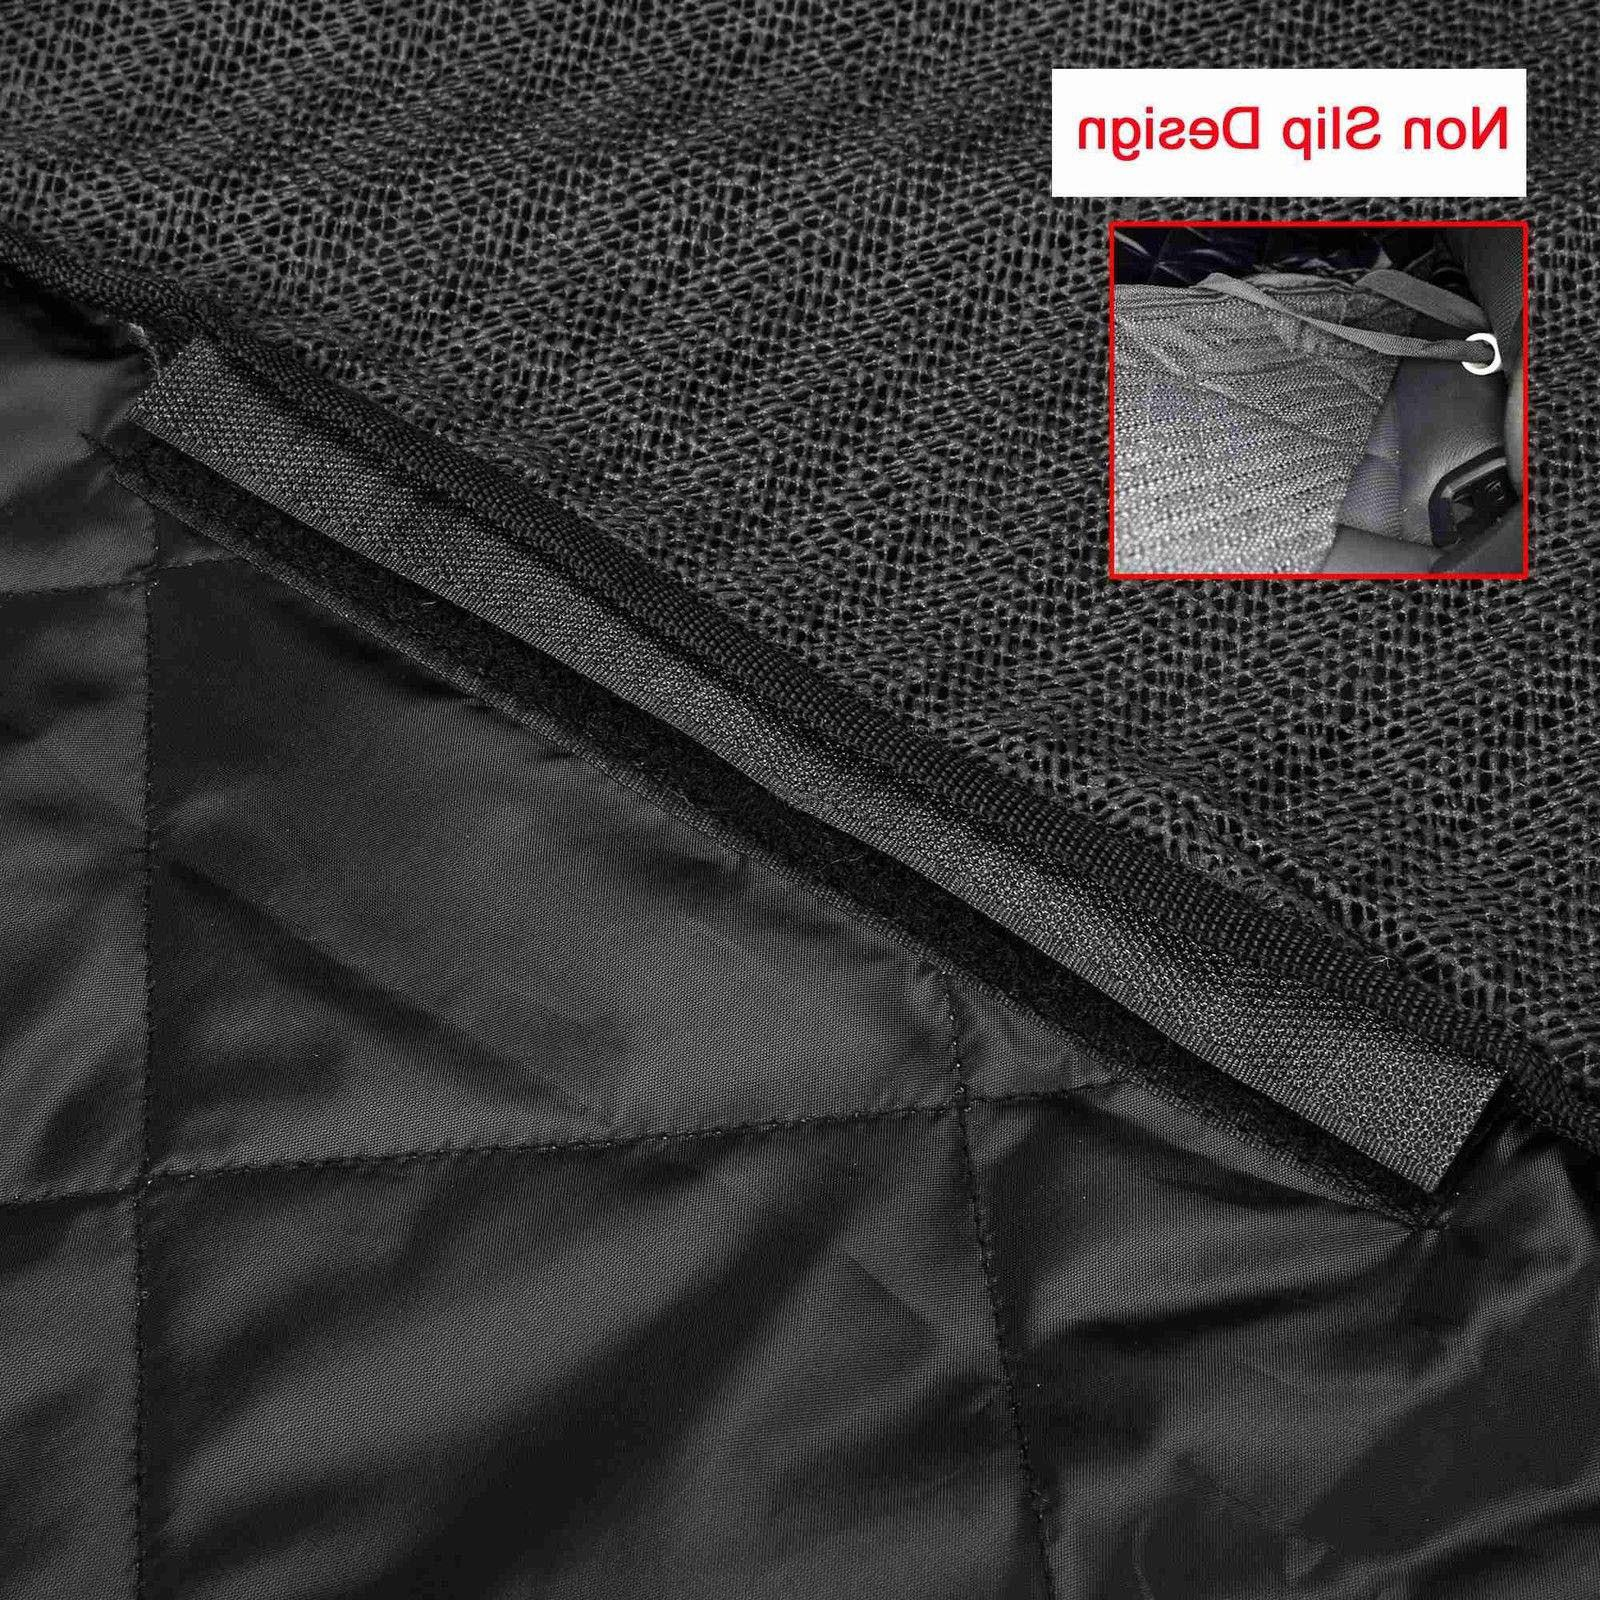 Seat Cover Back Car Pet Dog Travel Waterproof Bench Protector Luxury -Black